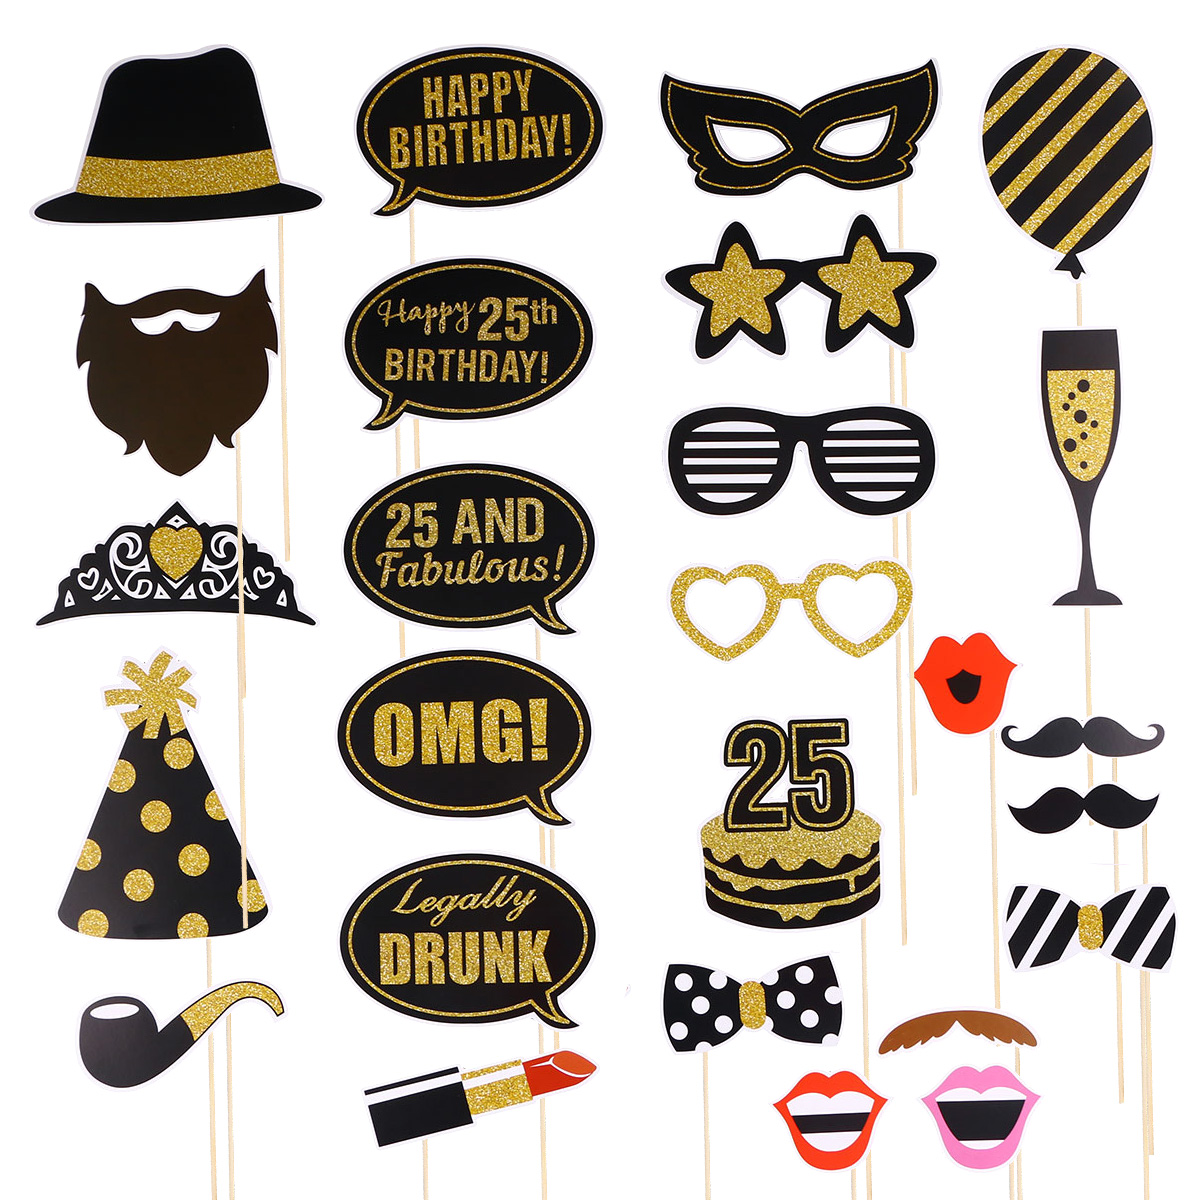 Photobooth Props27 pcs Birthday Photo Props Kit 25 Years Old Funny Creative Selfie Props Paper Mask Party Favors(China)